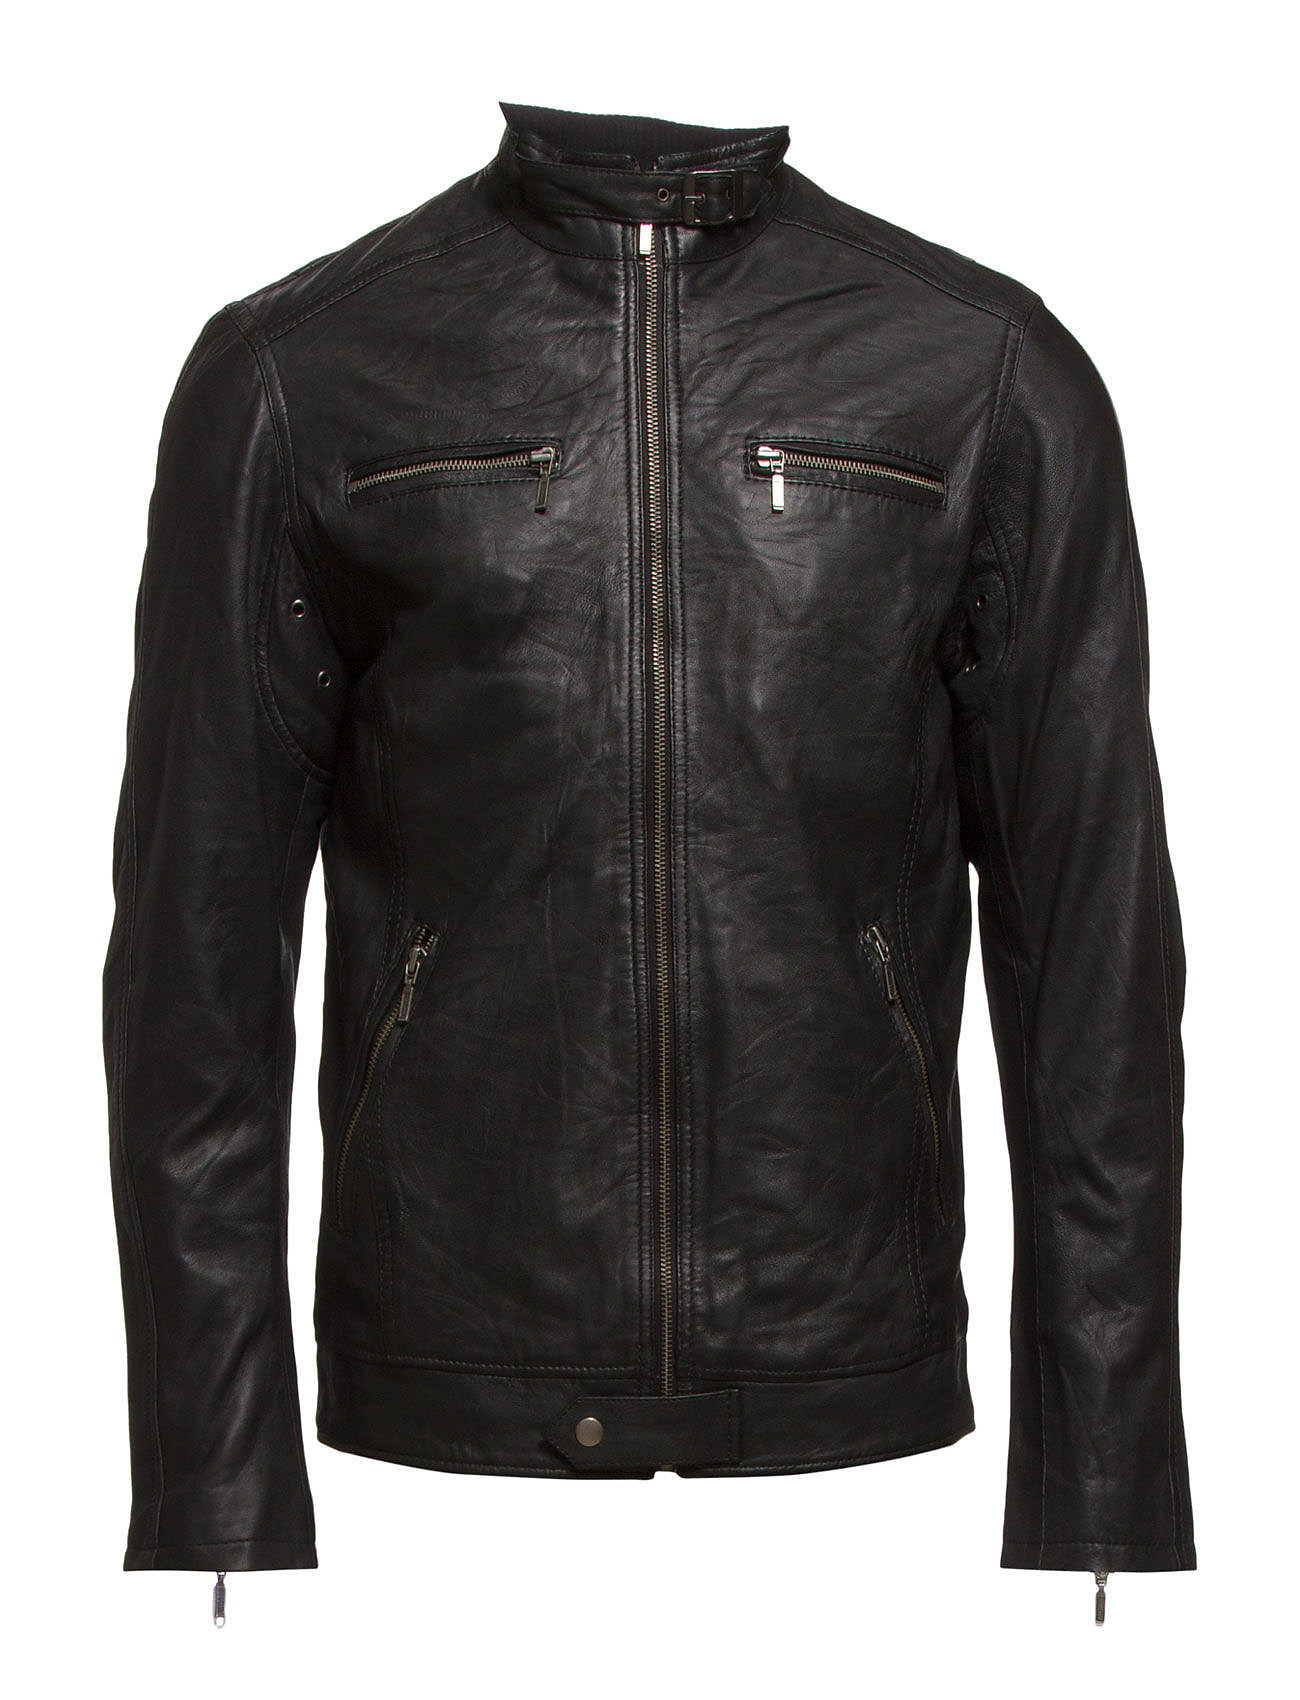 Bertoni Leather Jacket - 997 JET BLACK